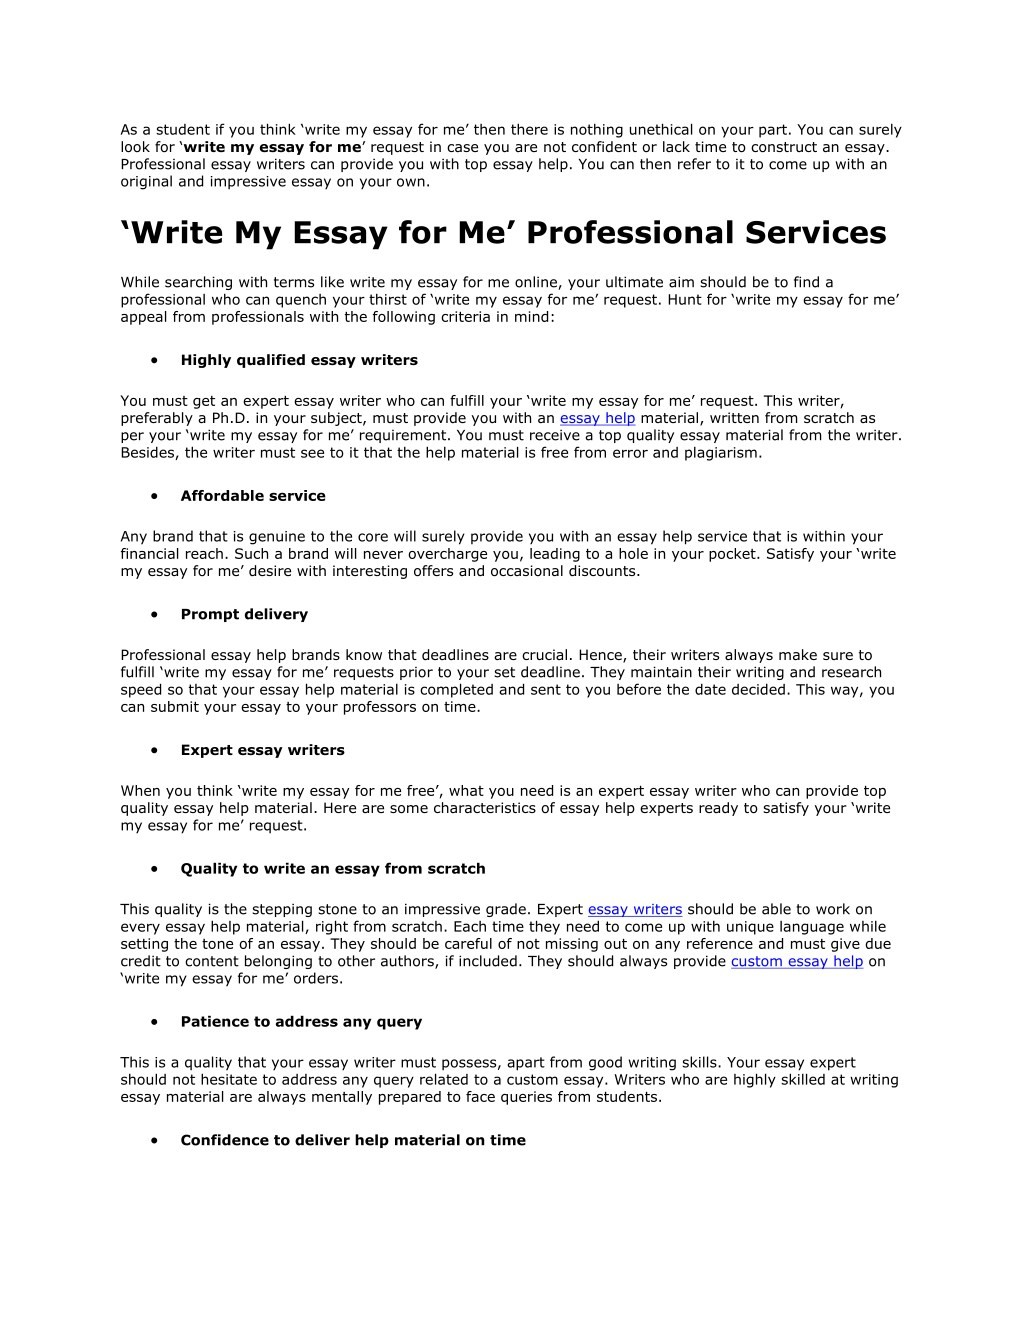 017 Write My Essay For Me Example As Student If You Think Surprising Me.org Free Online Uk Large